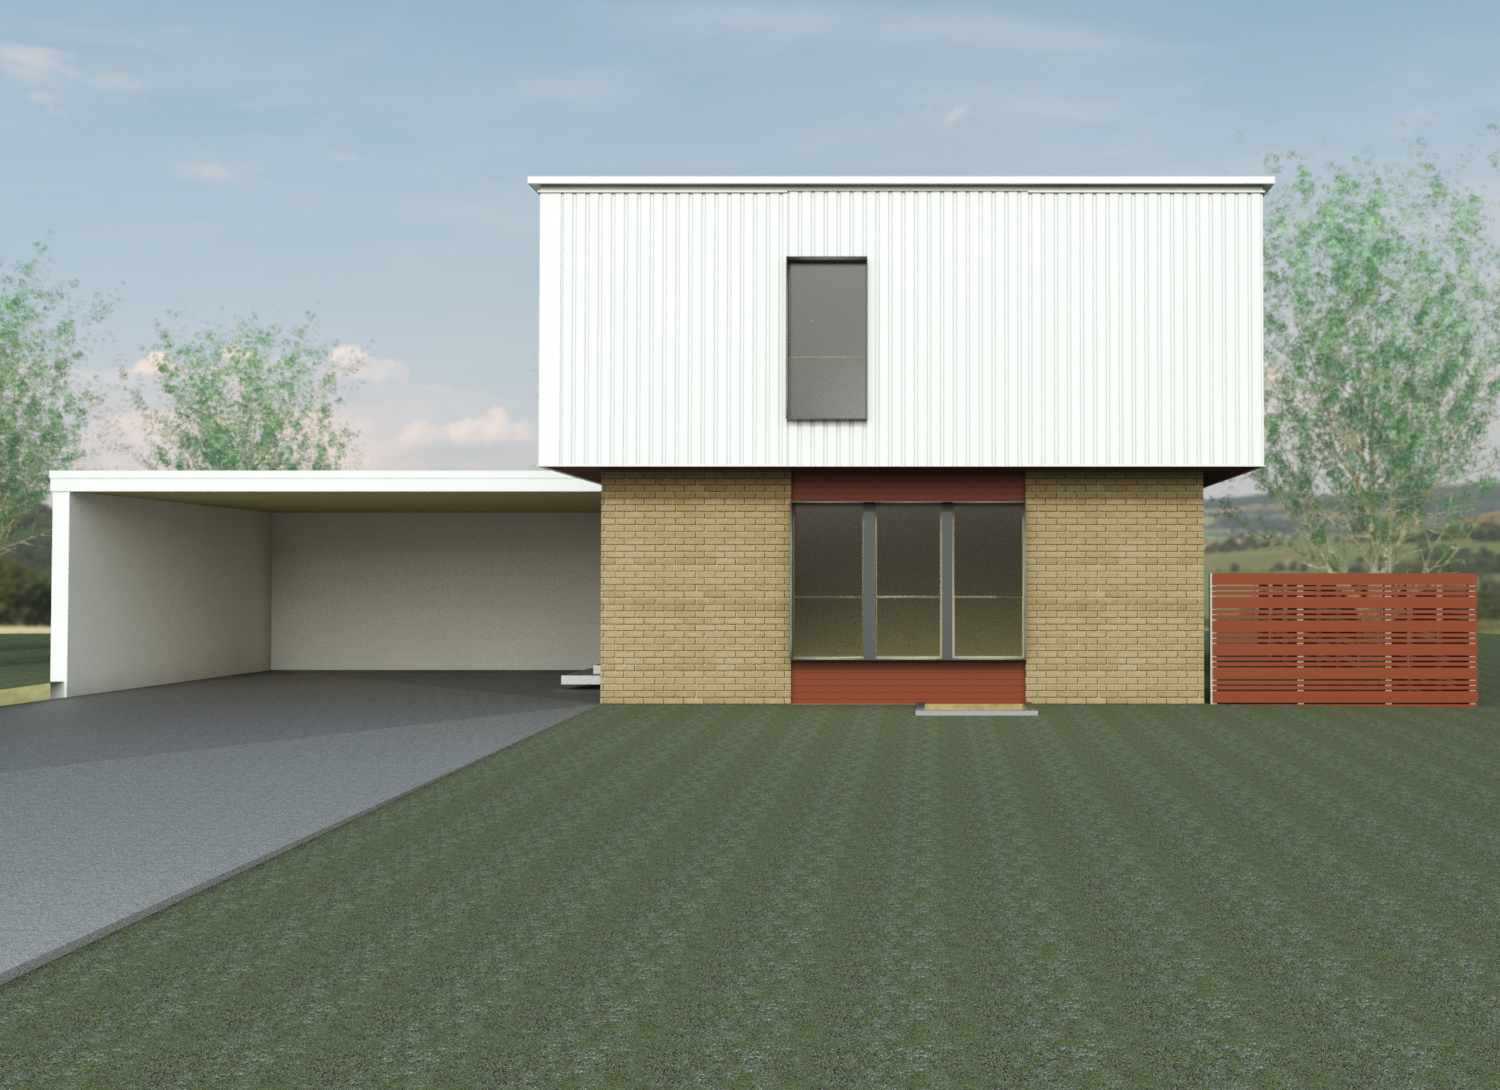 07 Martins_Residence_3D_View_-_front_from_street_-_straight_on_-_dark_gray_boxes.png